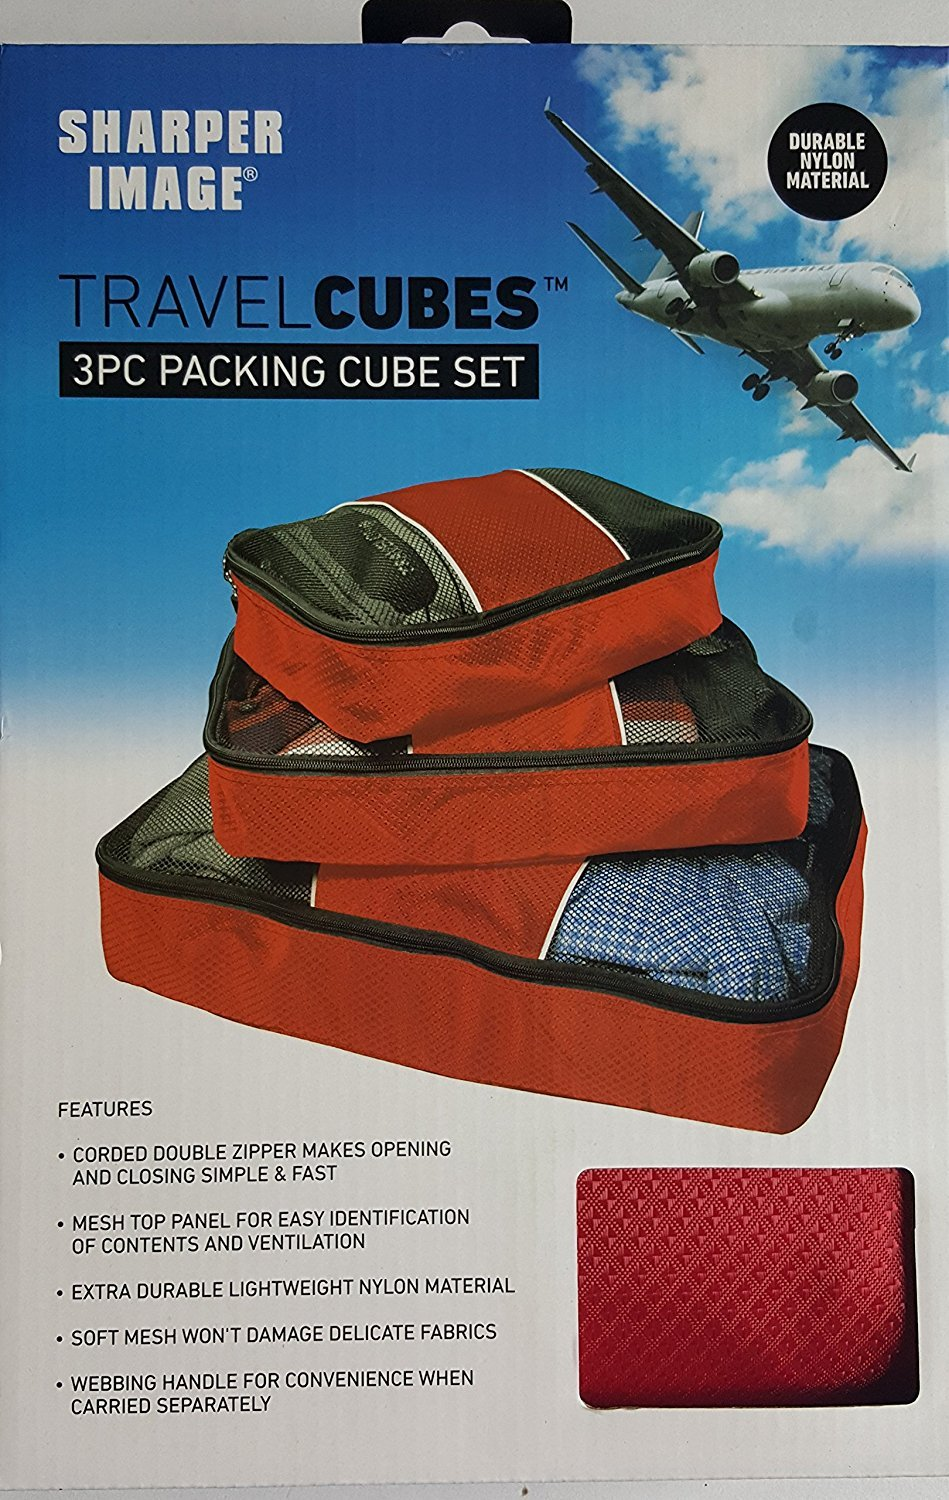 3 Pc Packing Cube Set Red by Sharper Image Sharper Image Travel Cubes